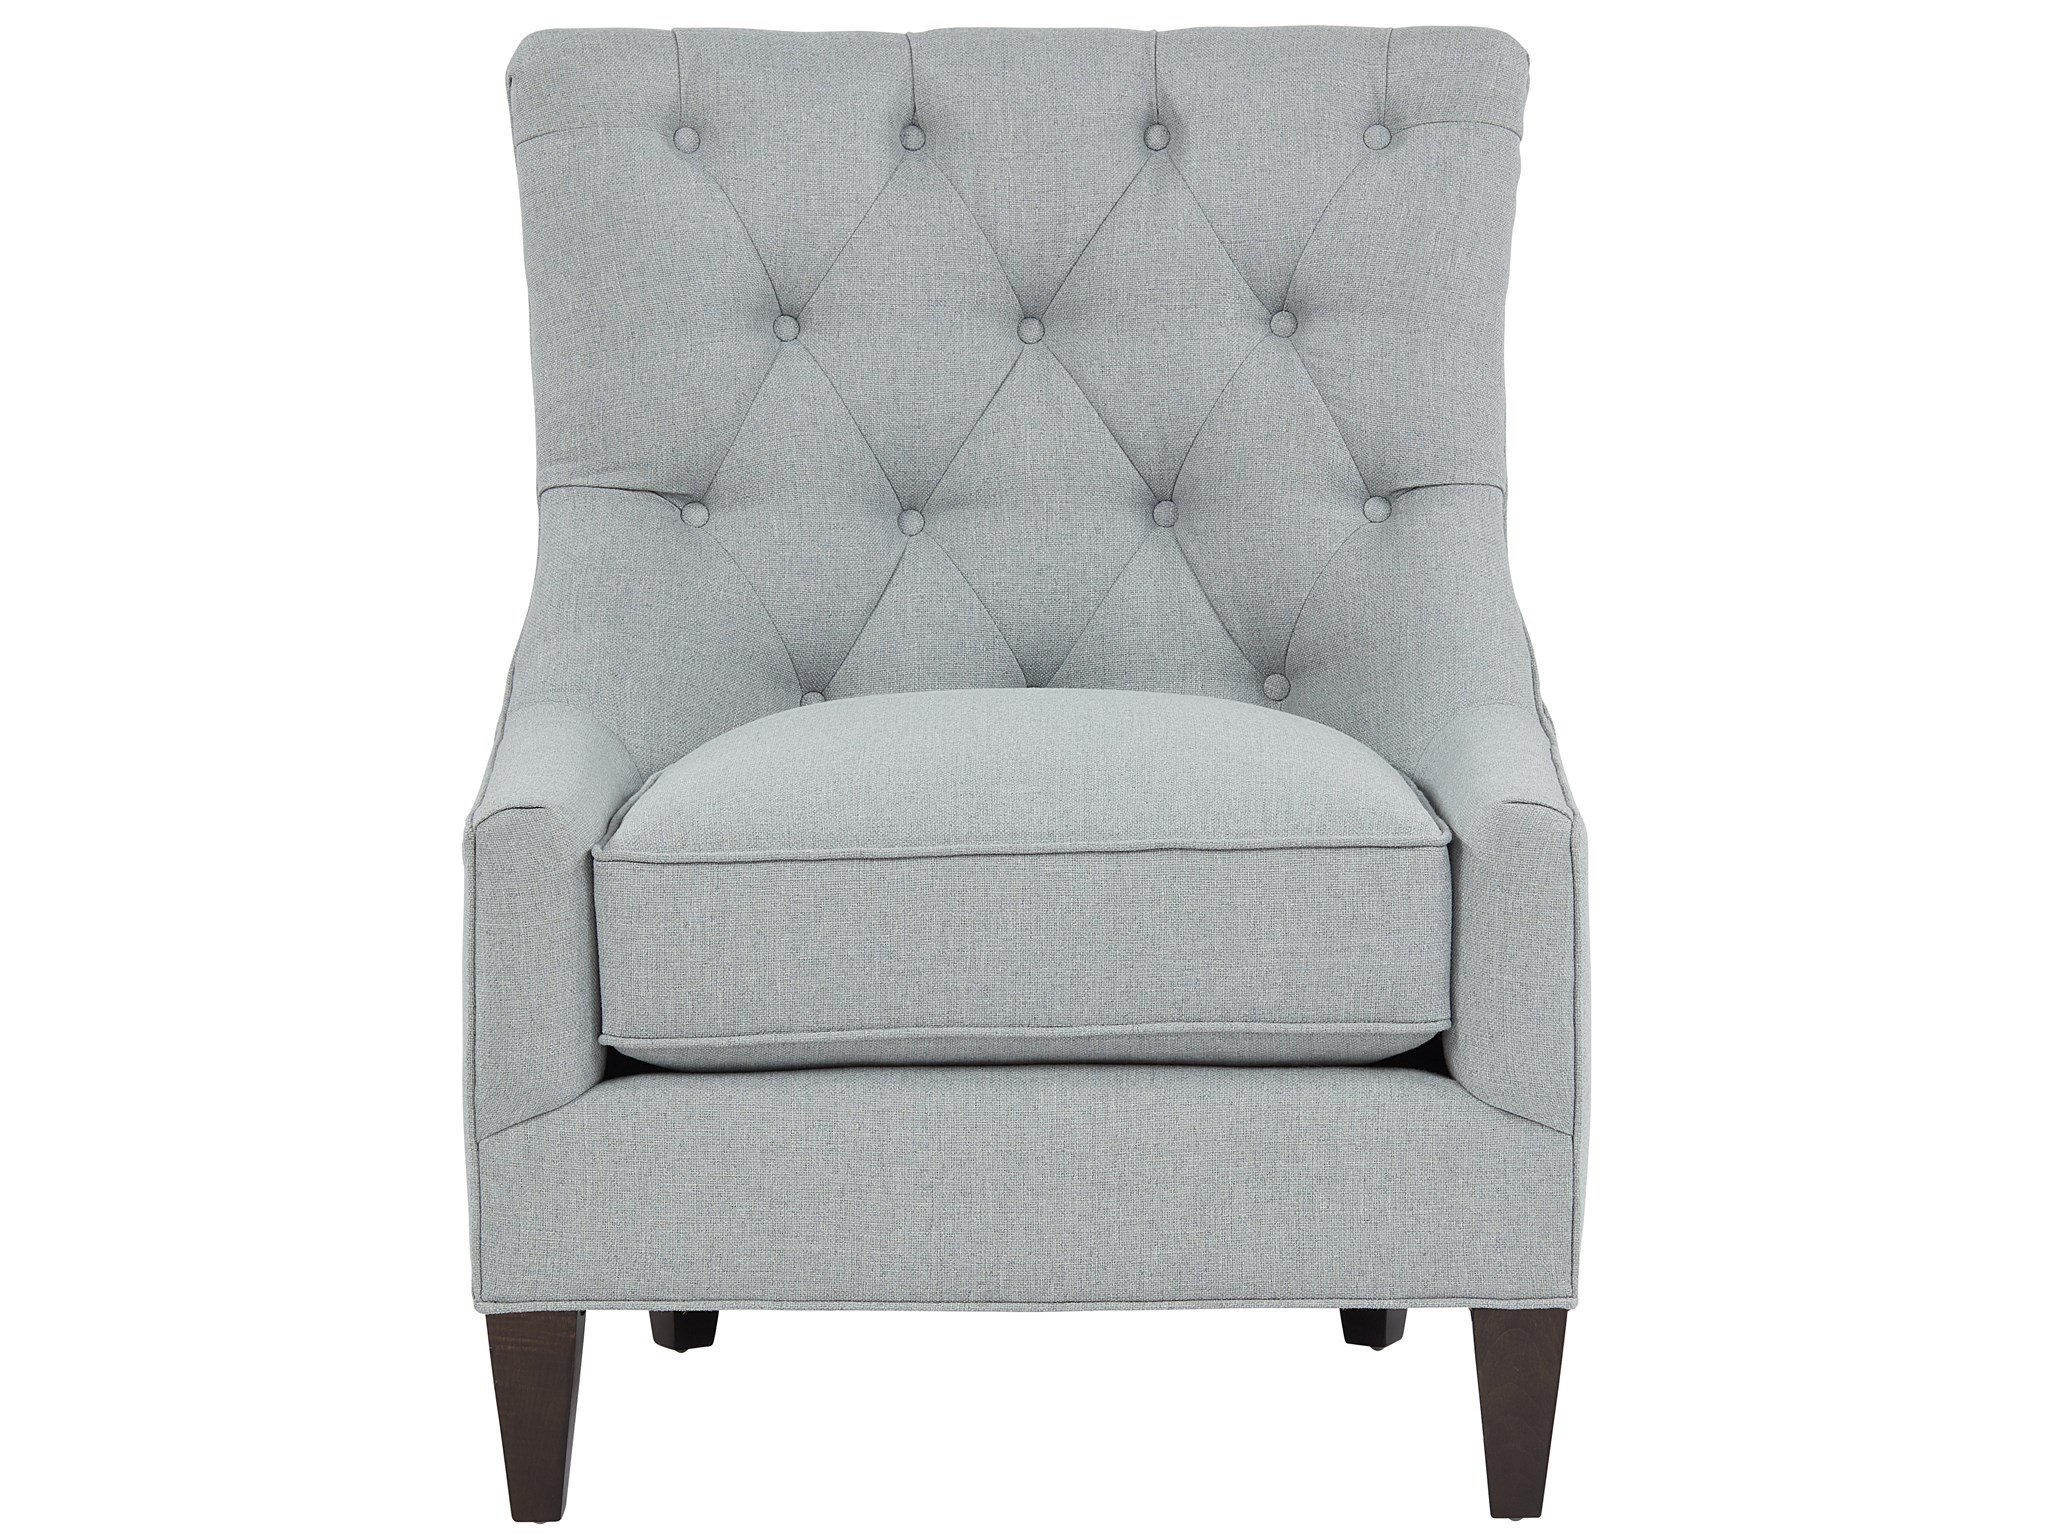 Dora Chair - Special Order